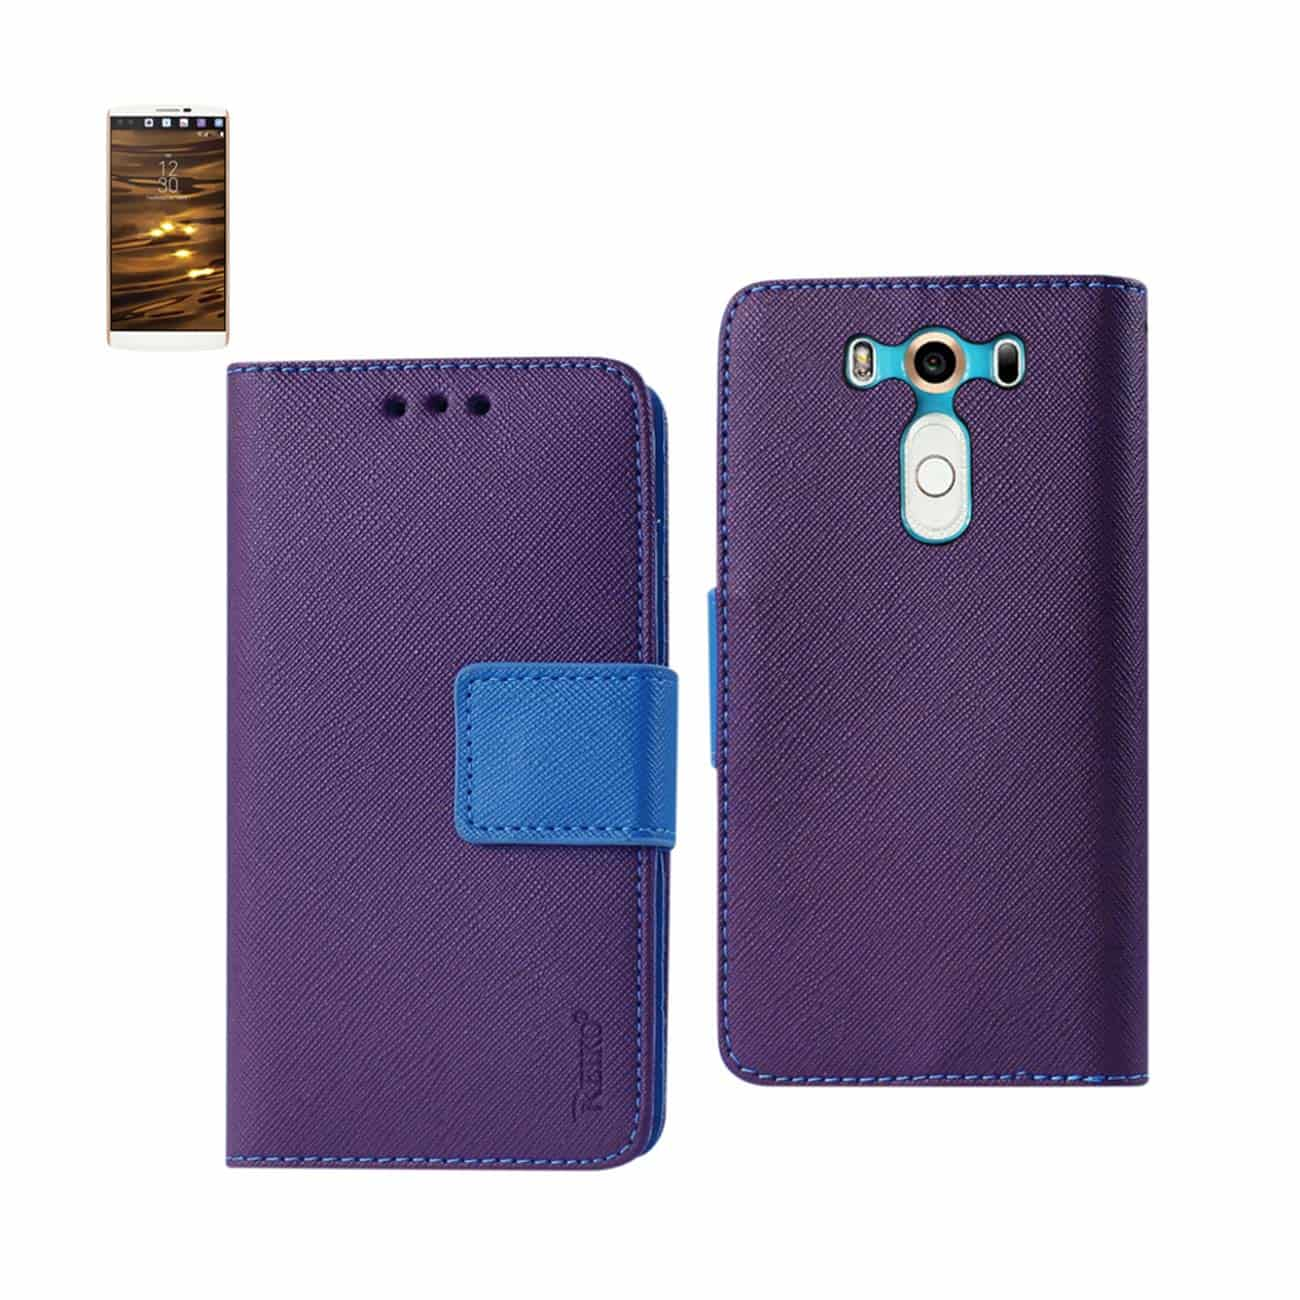 LG V10 3-IN-1 WALLET CASE IN PURPLE